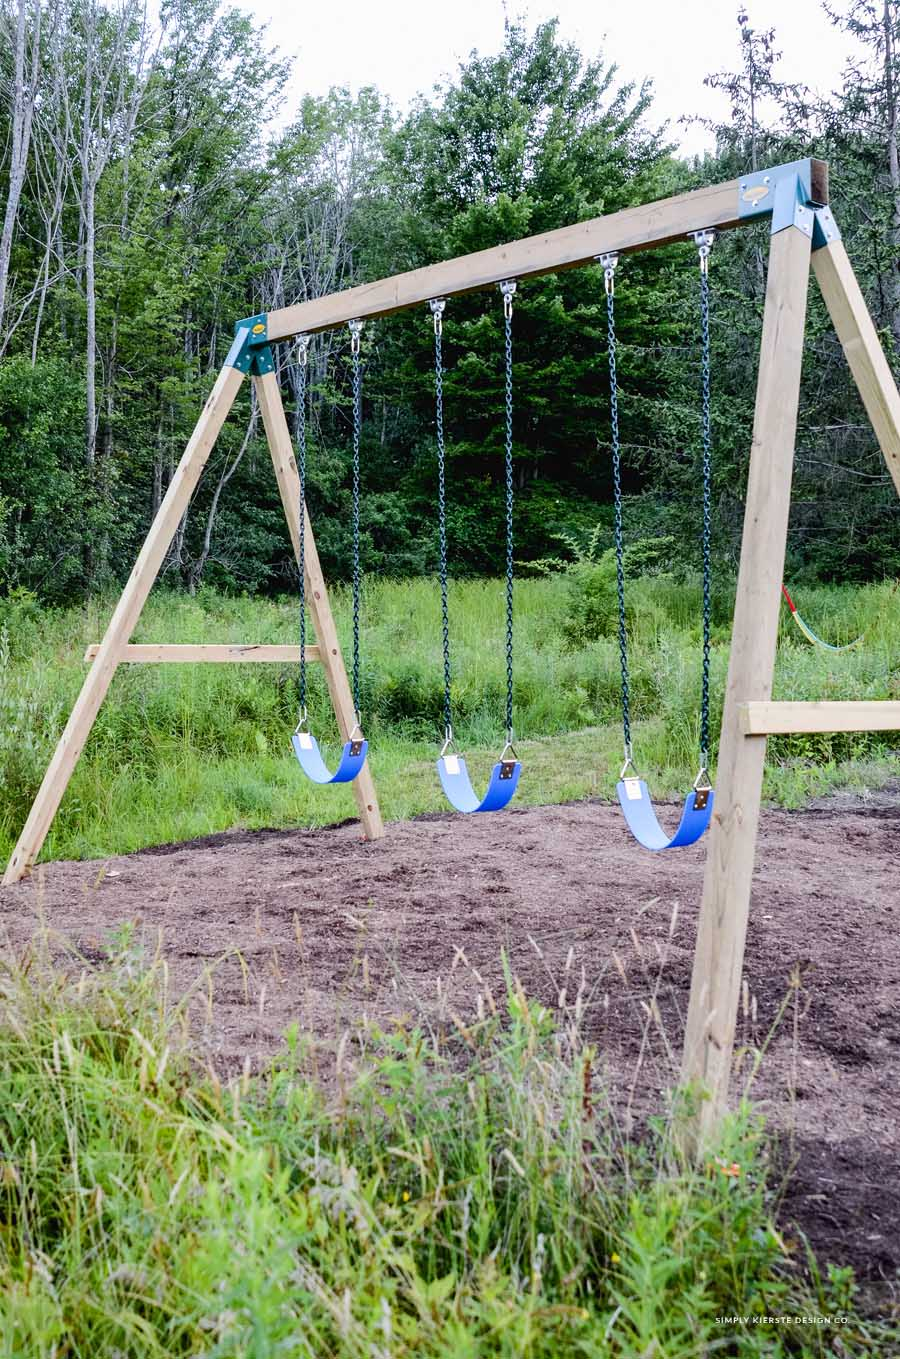 How to Build a Wooden Swing Set…the EASY way!